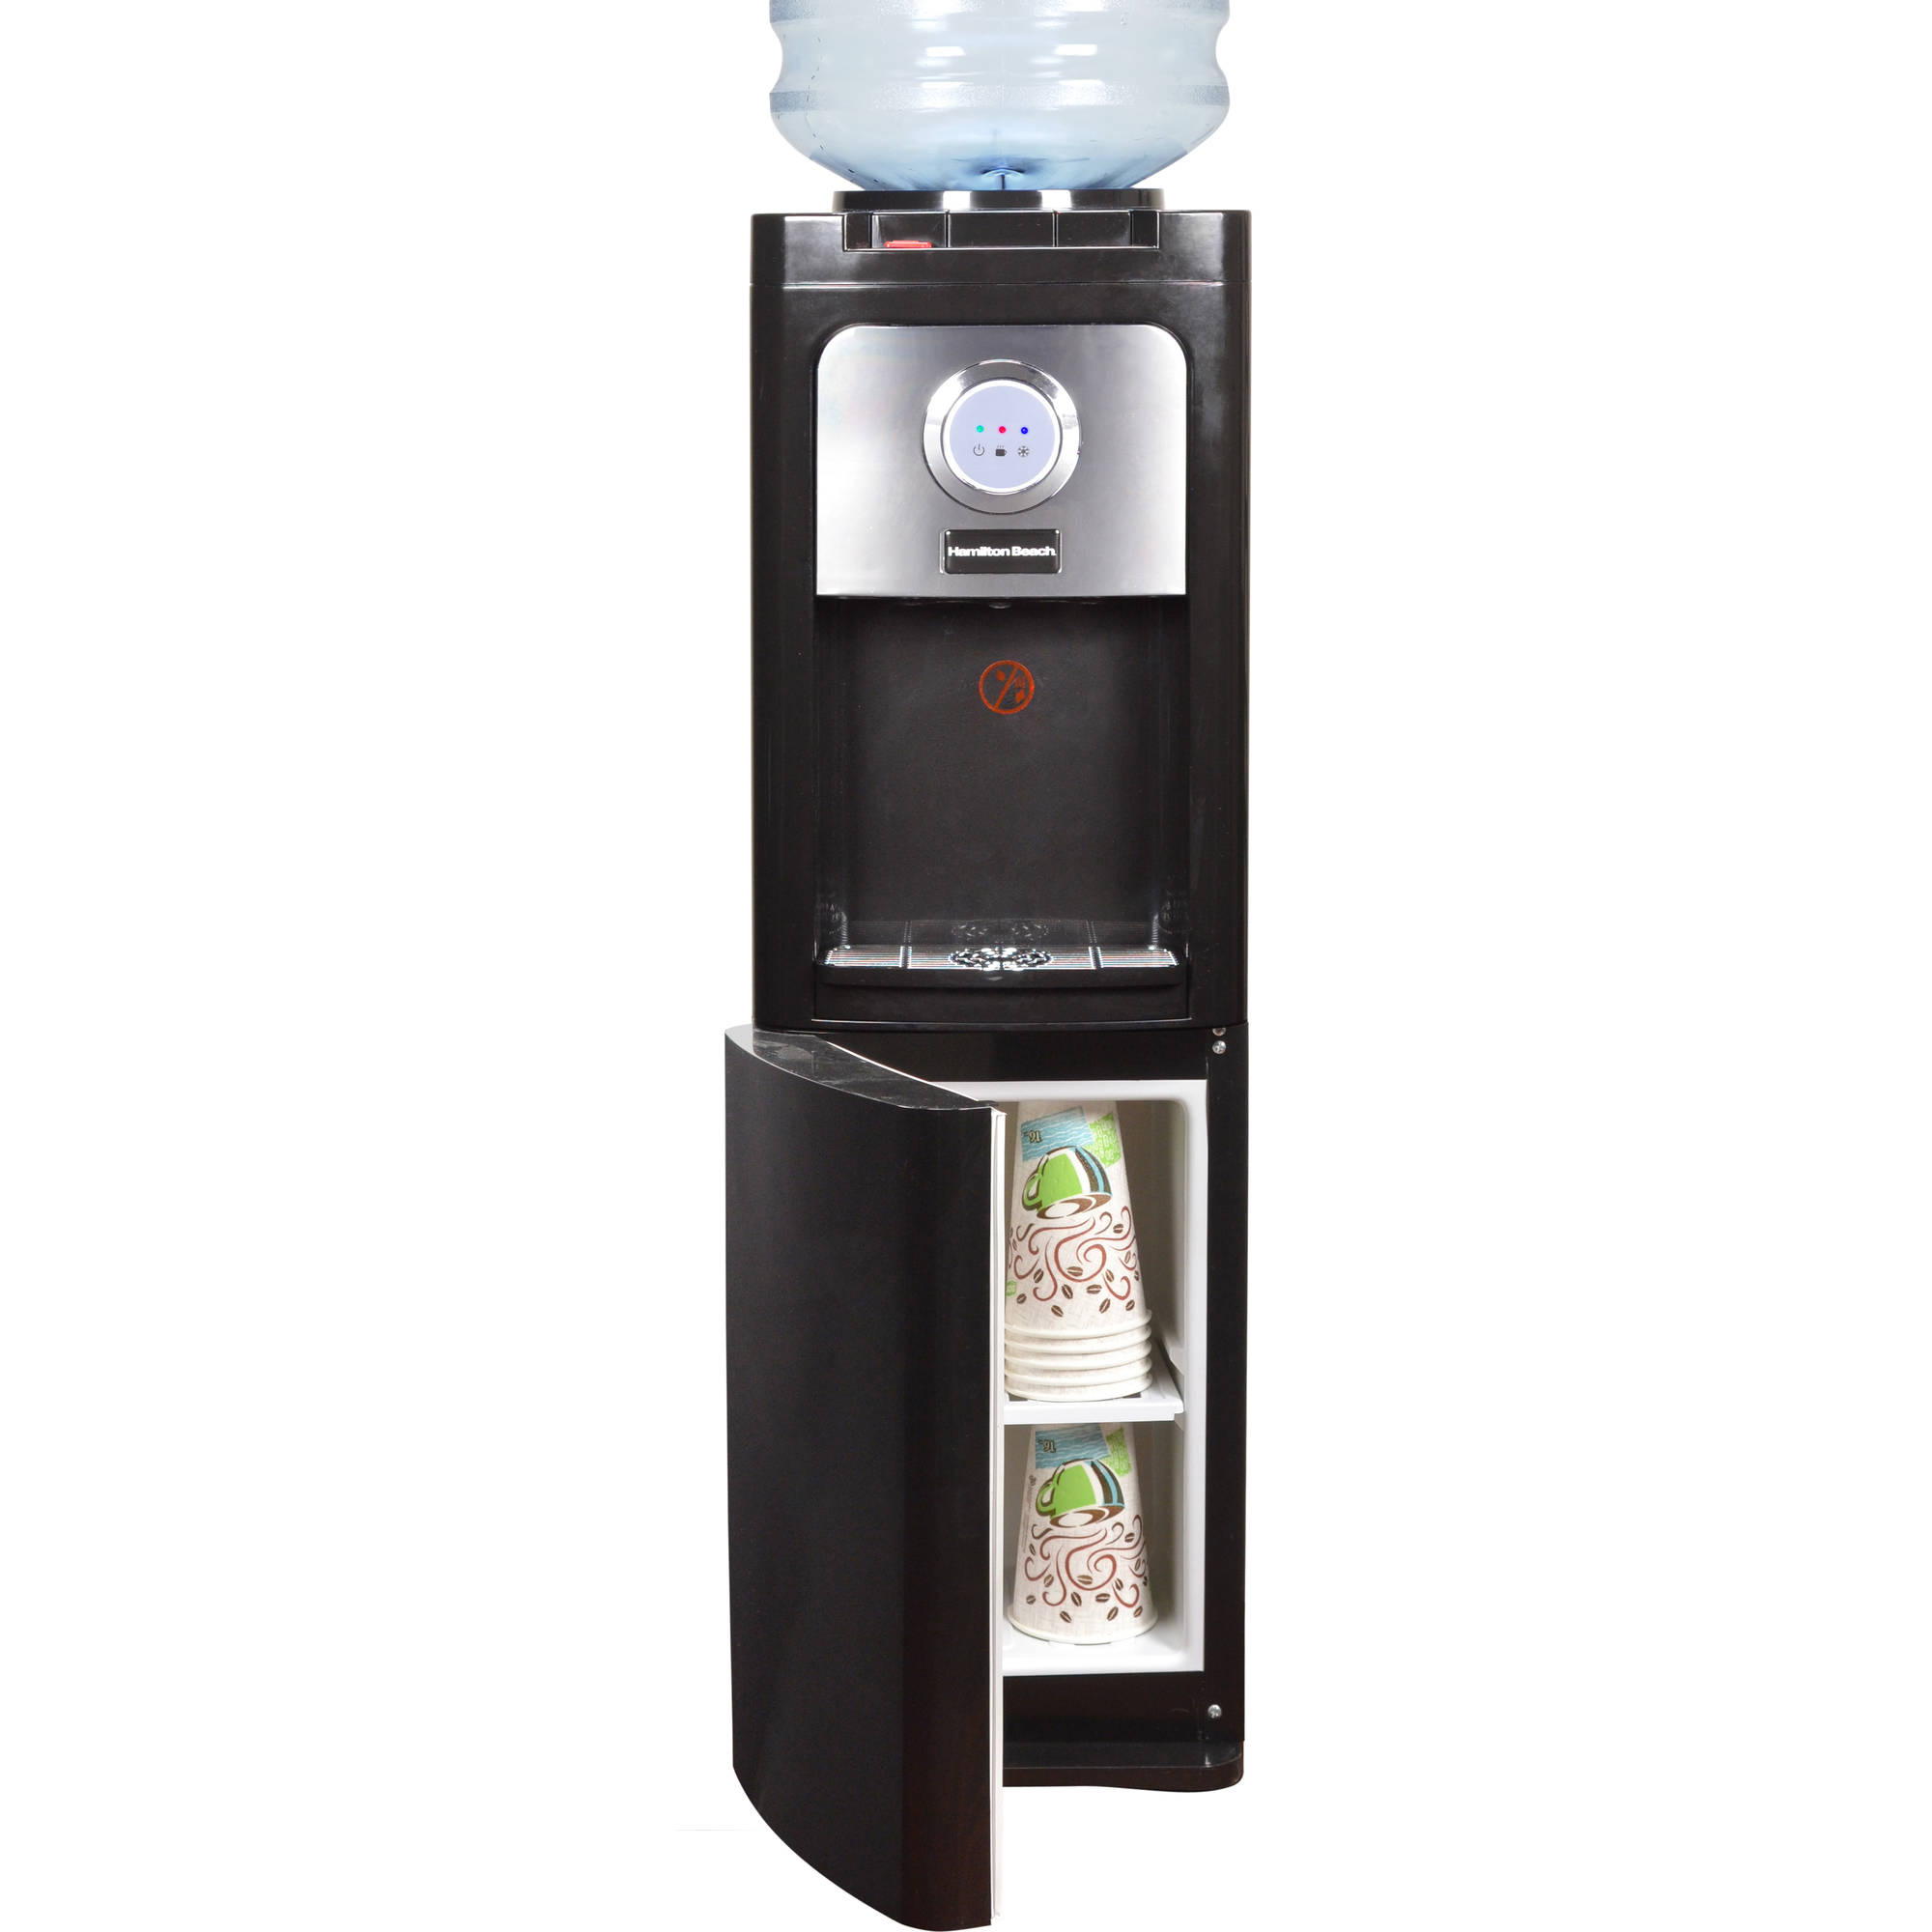 Hamilton Beach Tl 5 5w Top Loading Water Dispenser With Storage Cabinet Hot And Cold Temperatures Black